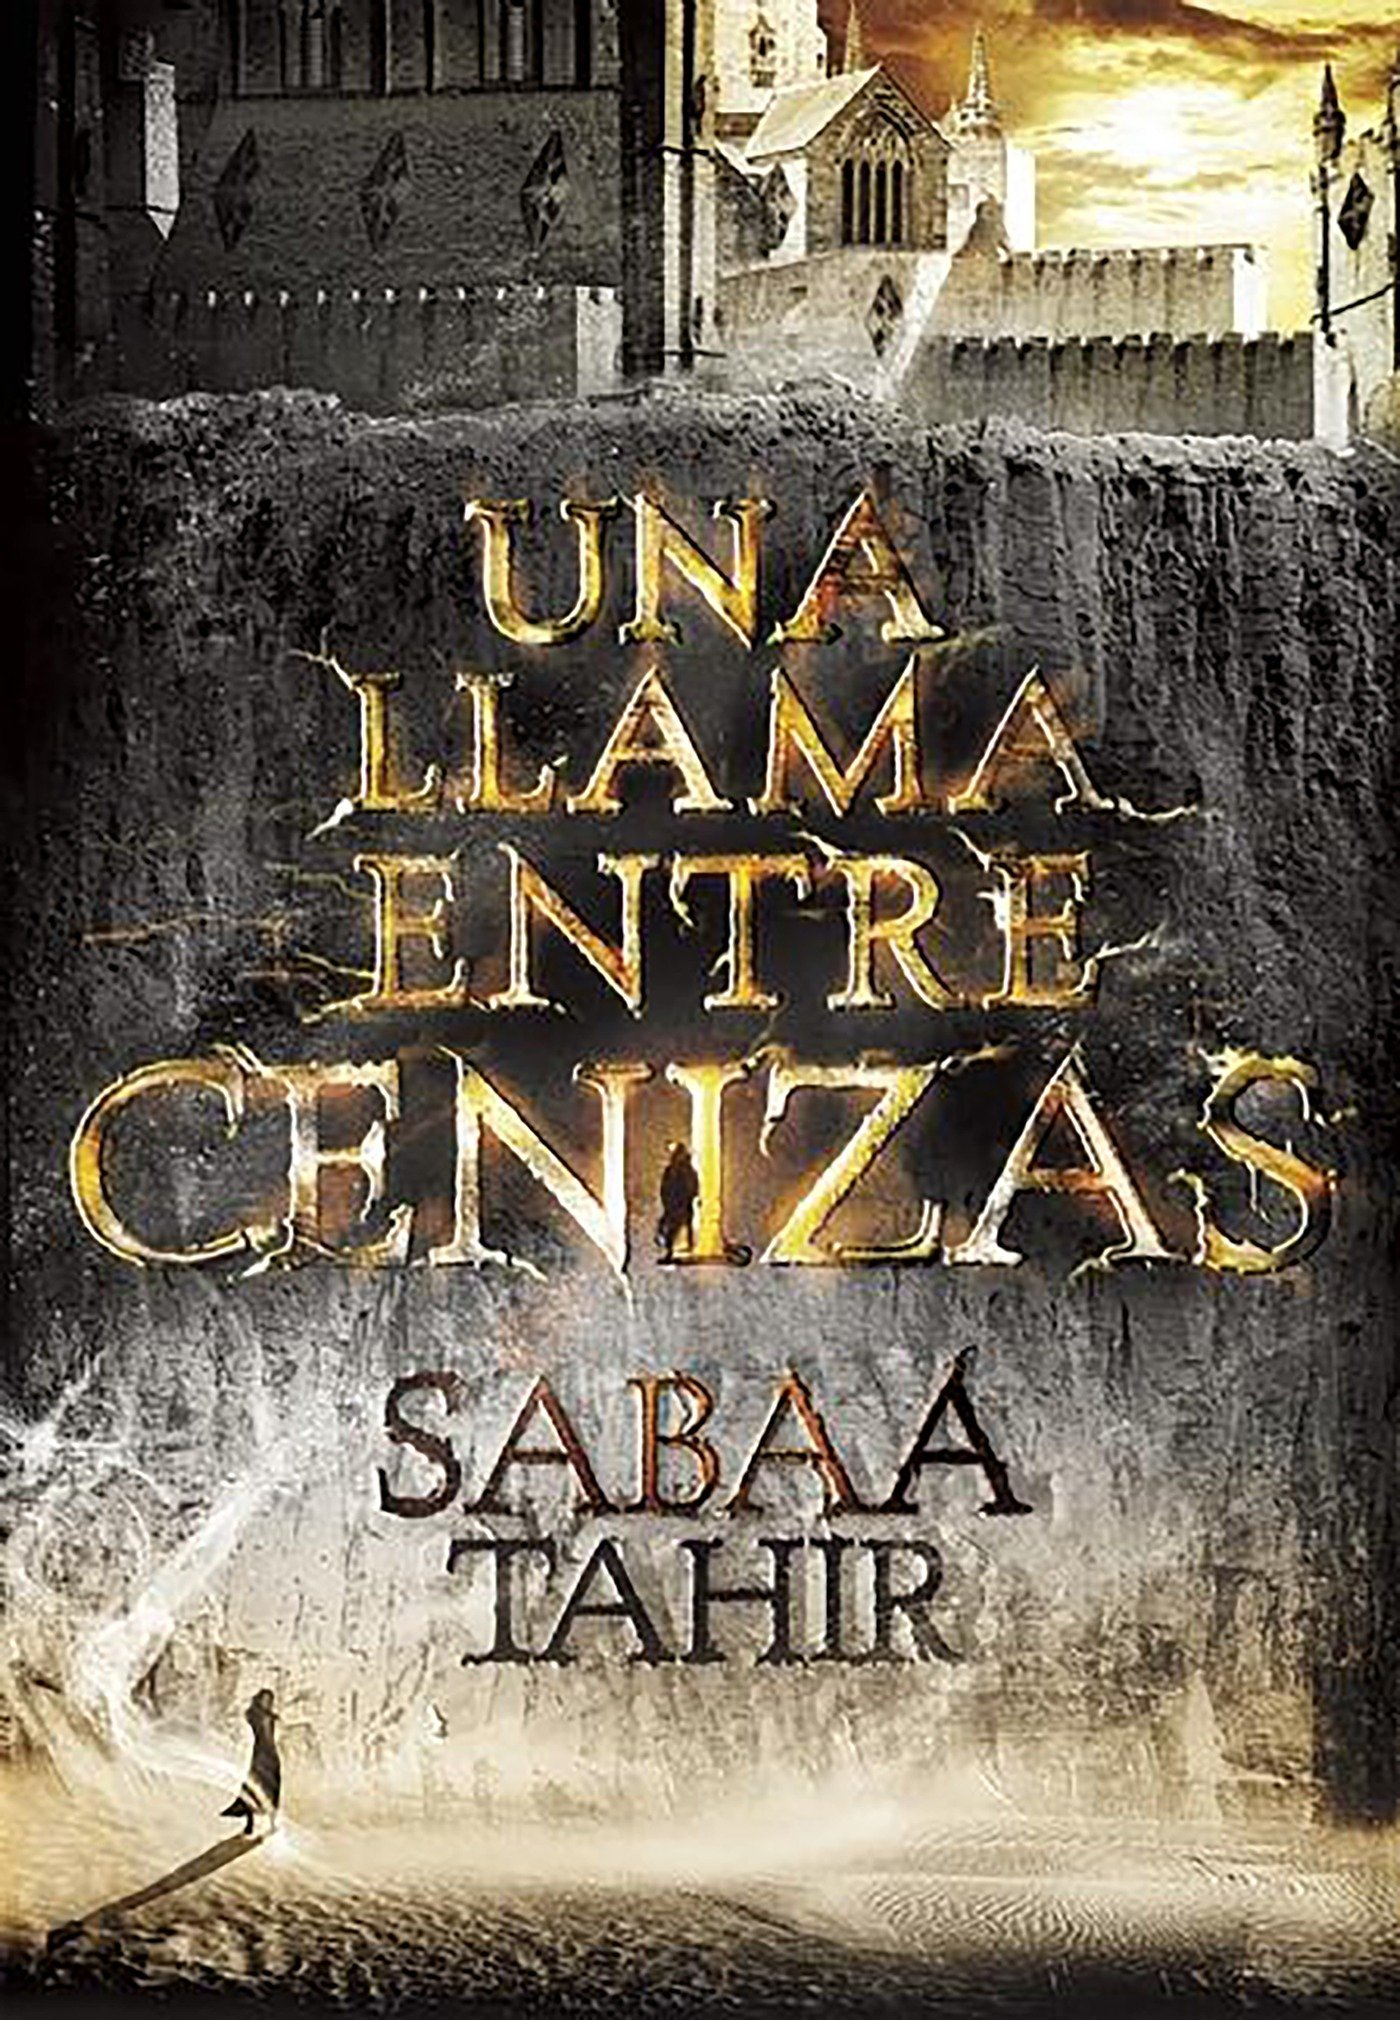 Una llama entre cenizas / An Ember in the Ashes (Spanish Edition): Sabaa Tahir: 9788490434727: Amazon.com: Books